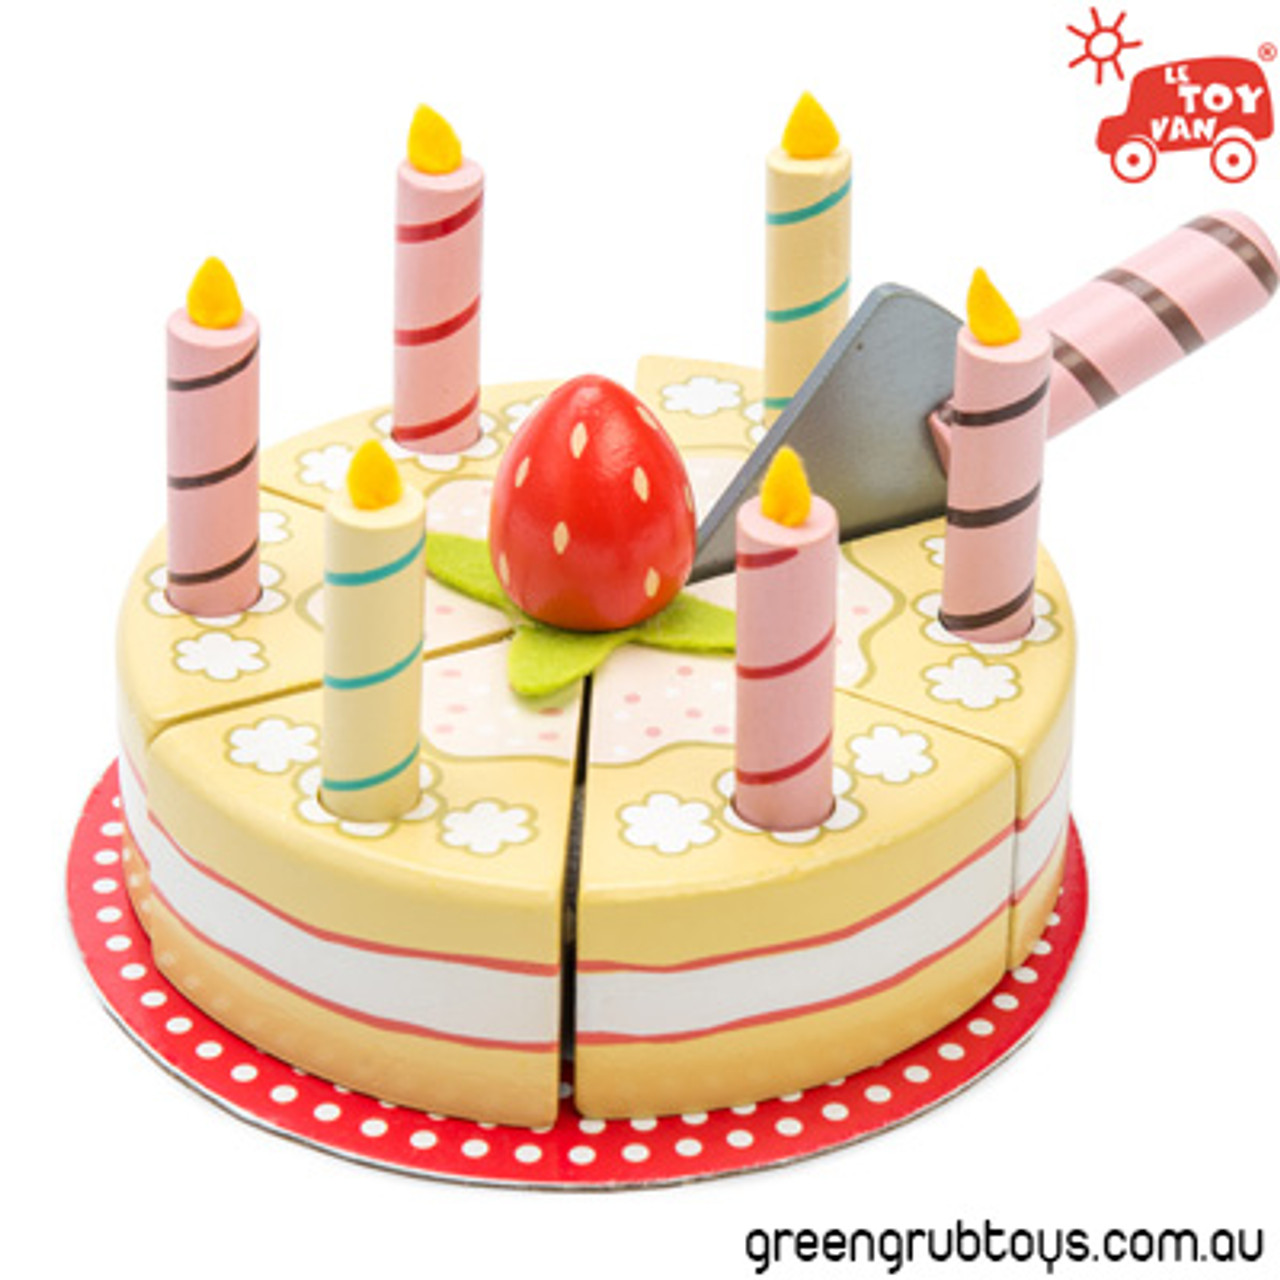 Awesome Le Toy Van Birthday Cake Wooden Toy Food Greengrub Wooden Toys Personalised Birthday Cards Beptaeletsinfo